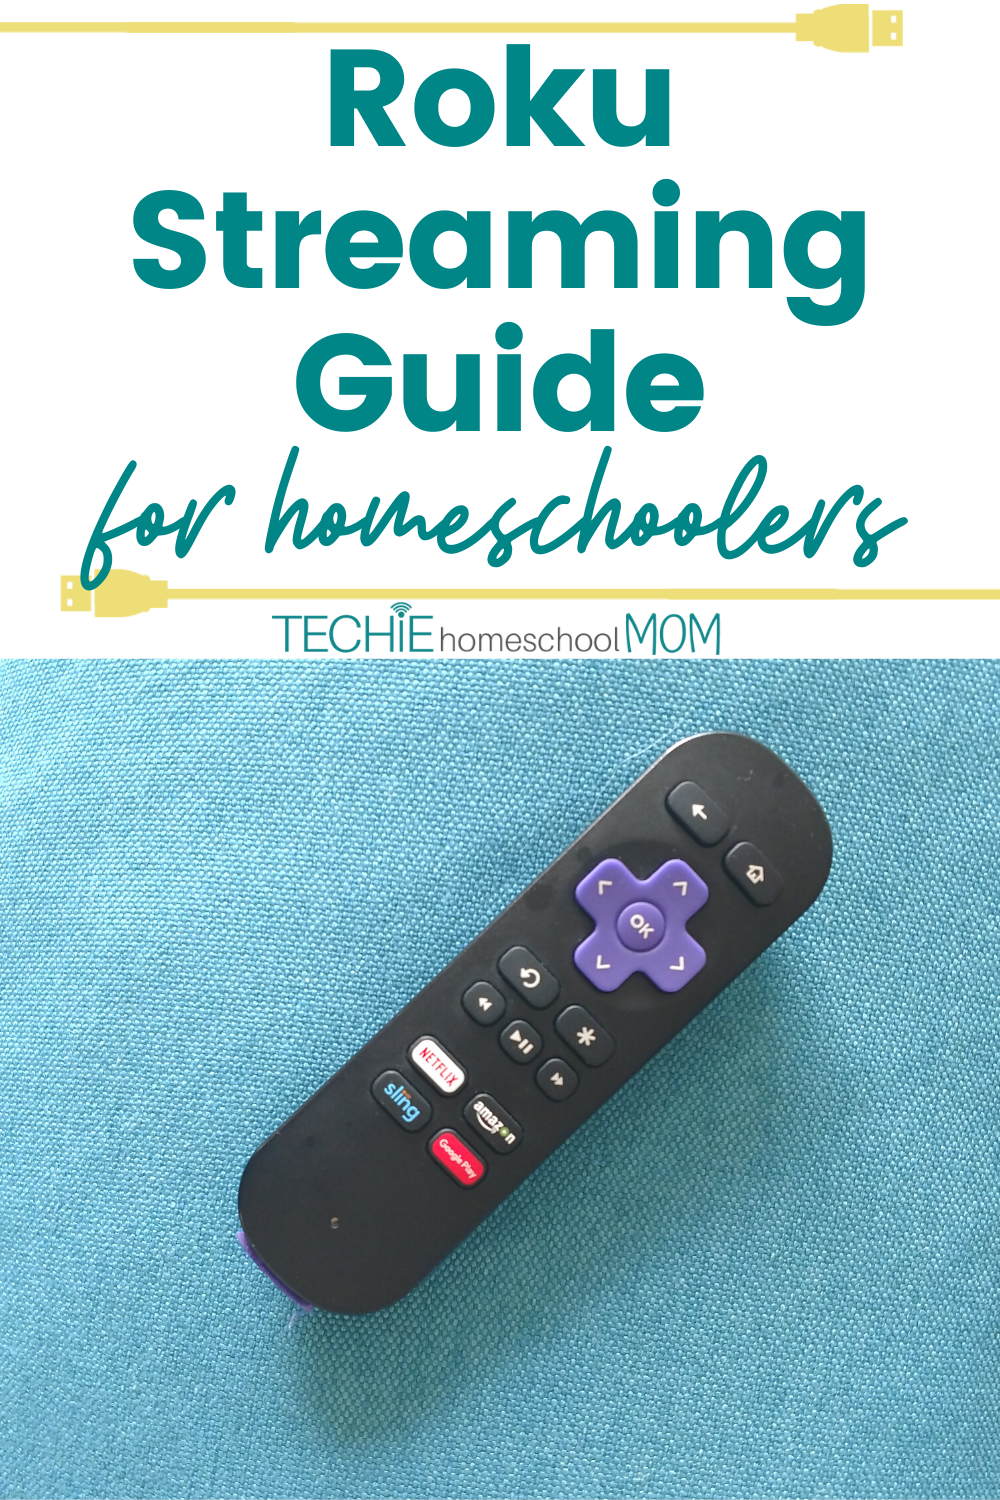 I love how easy it is to find good quality videos to supplement our homeschooling. With a Roku, I can access thousands of channels. Read this article to learn why you should use a Roku streaming device for your family's home education.